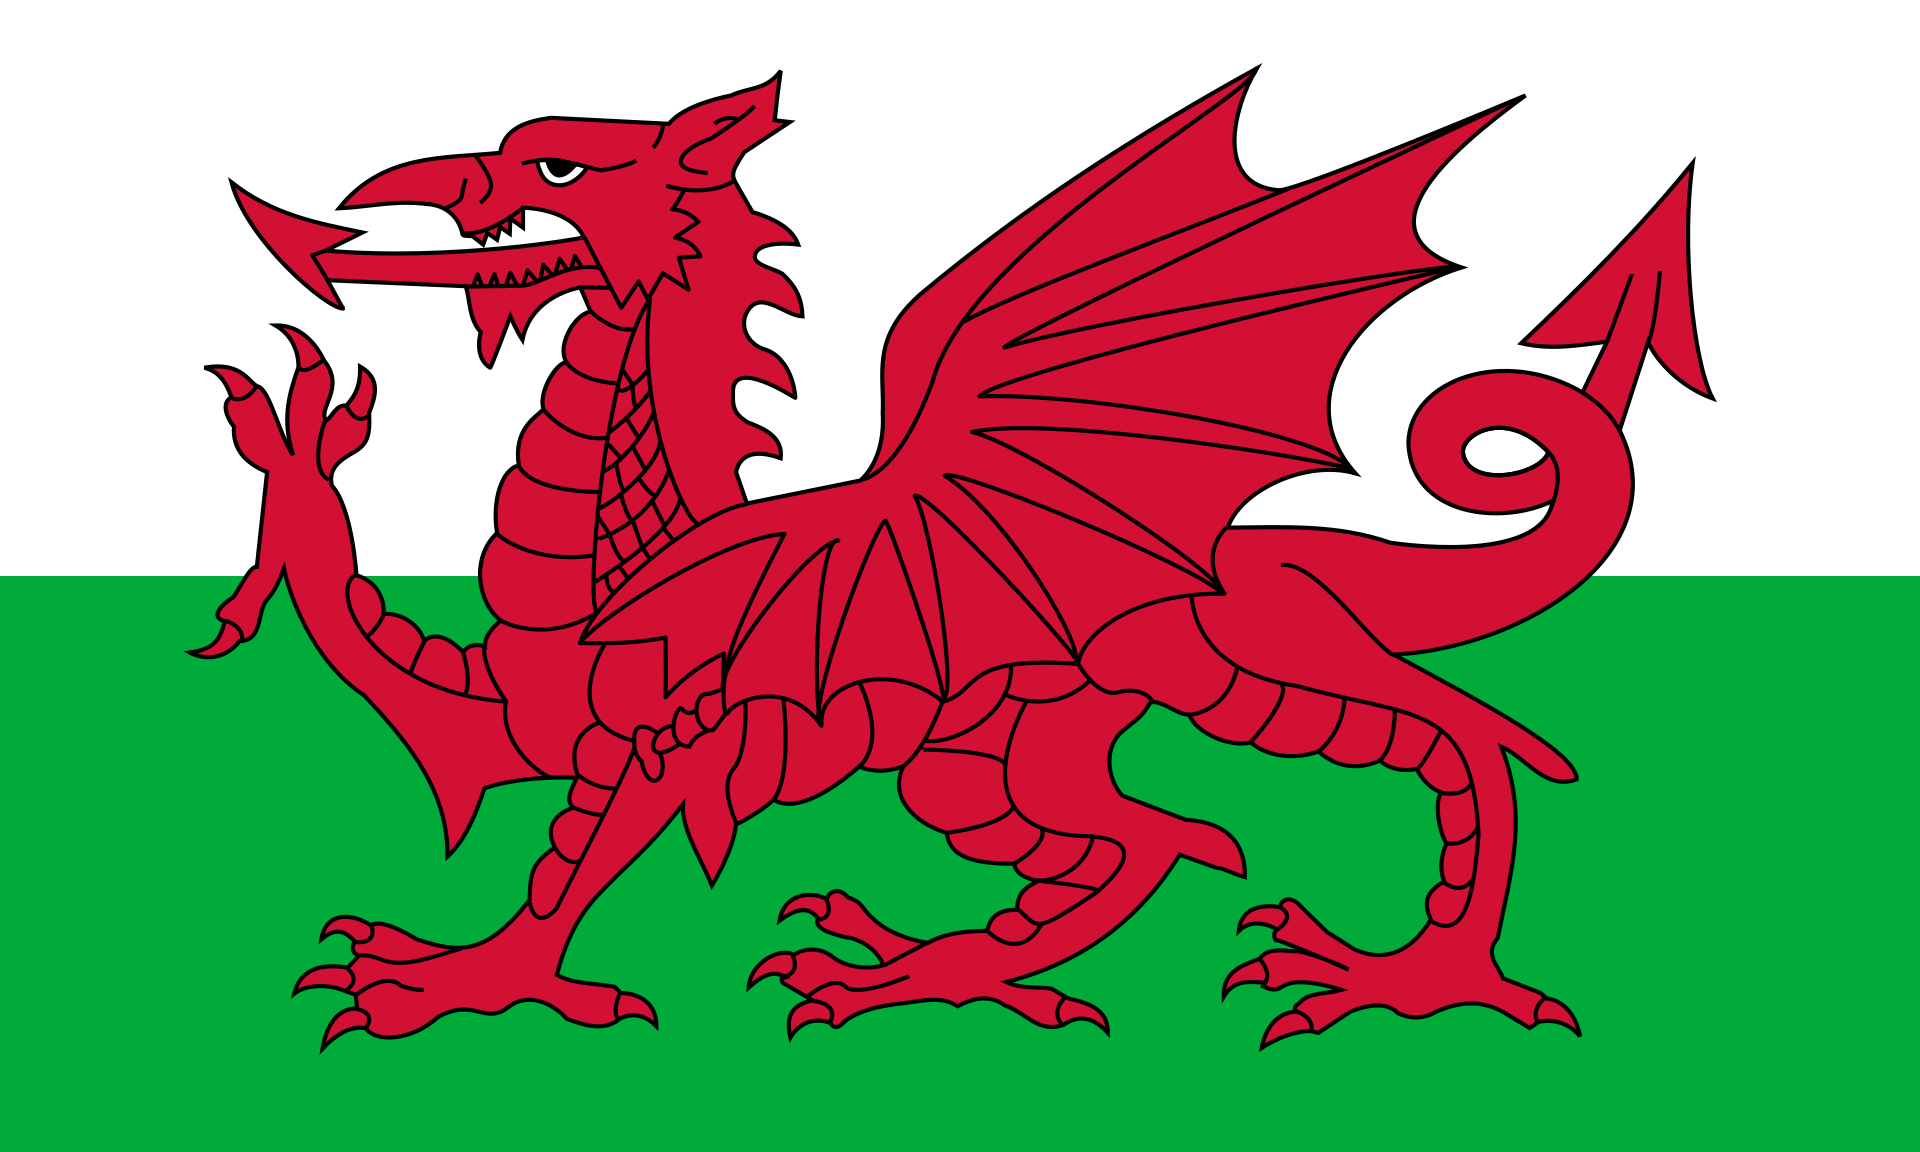 Welsh dragon made in wales